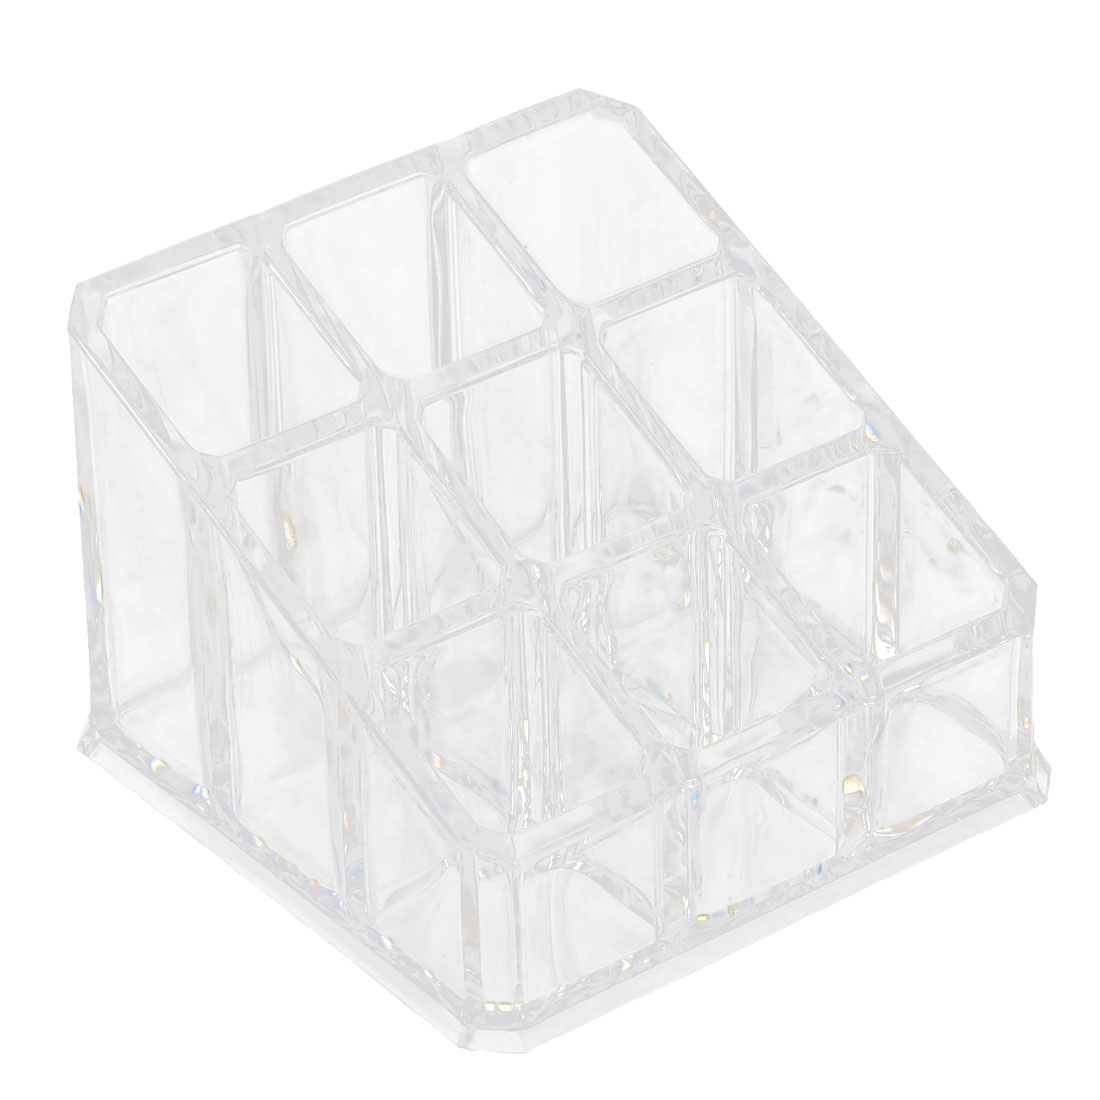 Acrylic 9-slot Trapezoid Makeup Cosmetic Organizer Lipstick Display Stand Storage Box